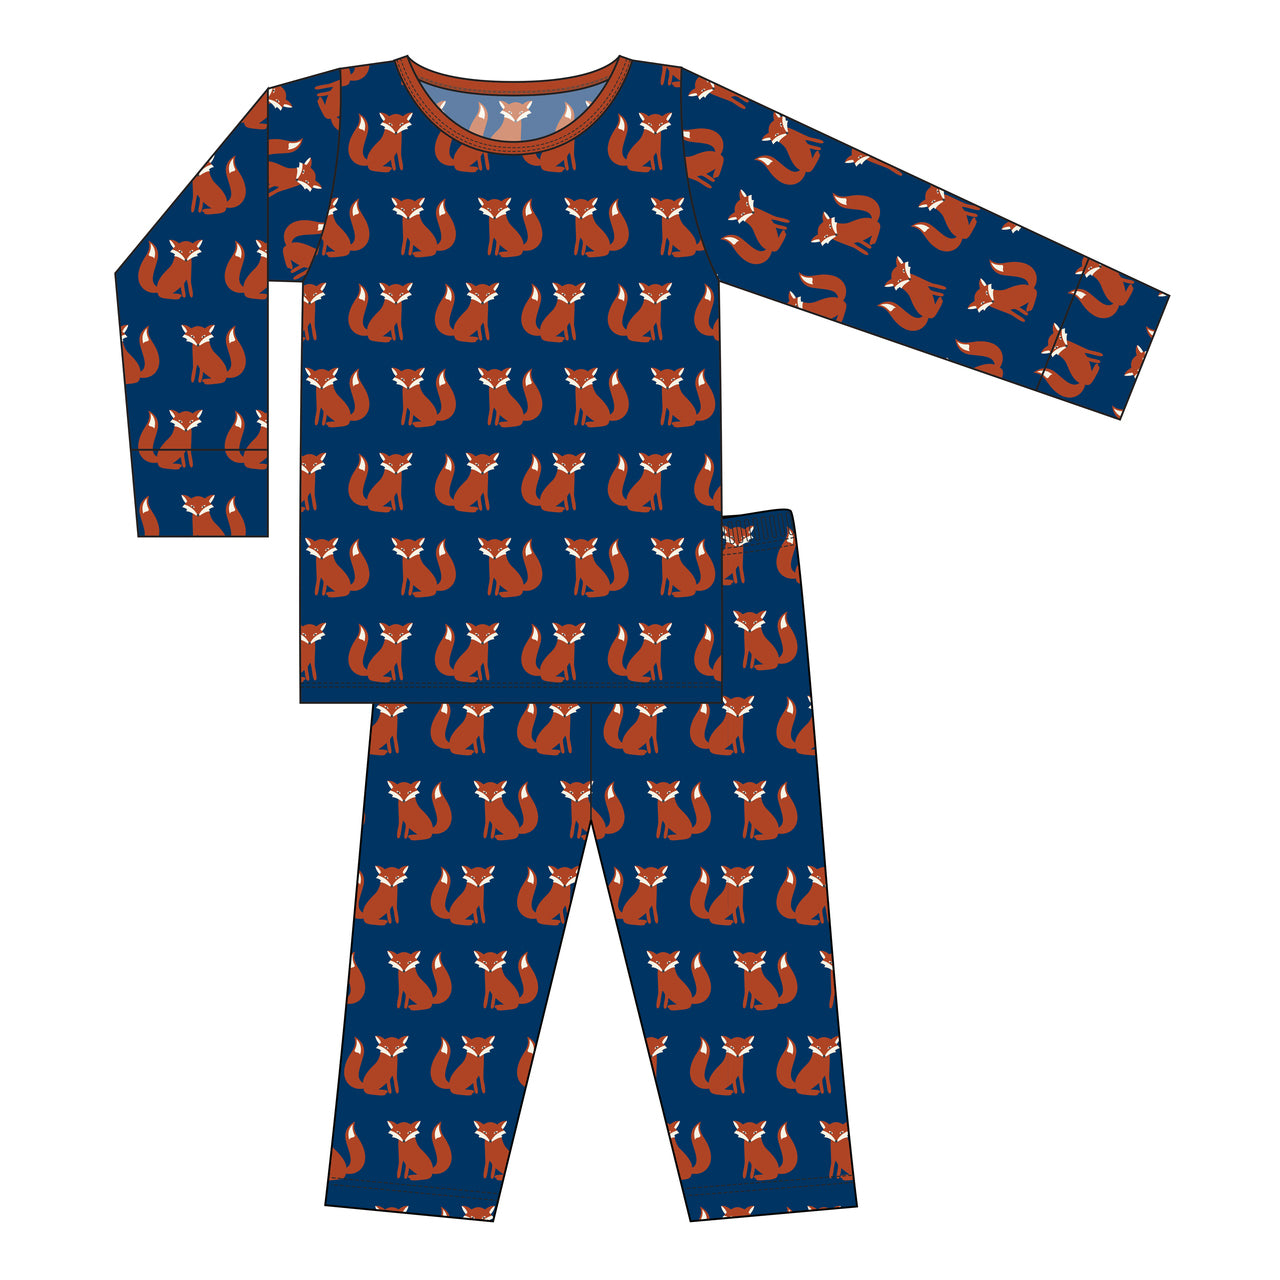 Kickee Pants - Fall 2 2018 - Pajama Set - Navy Fox